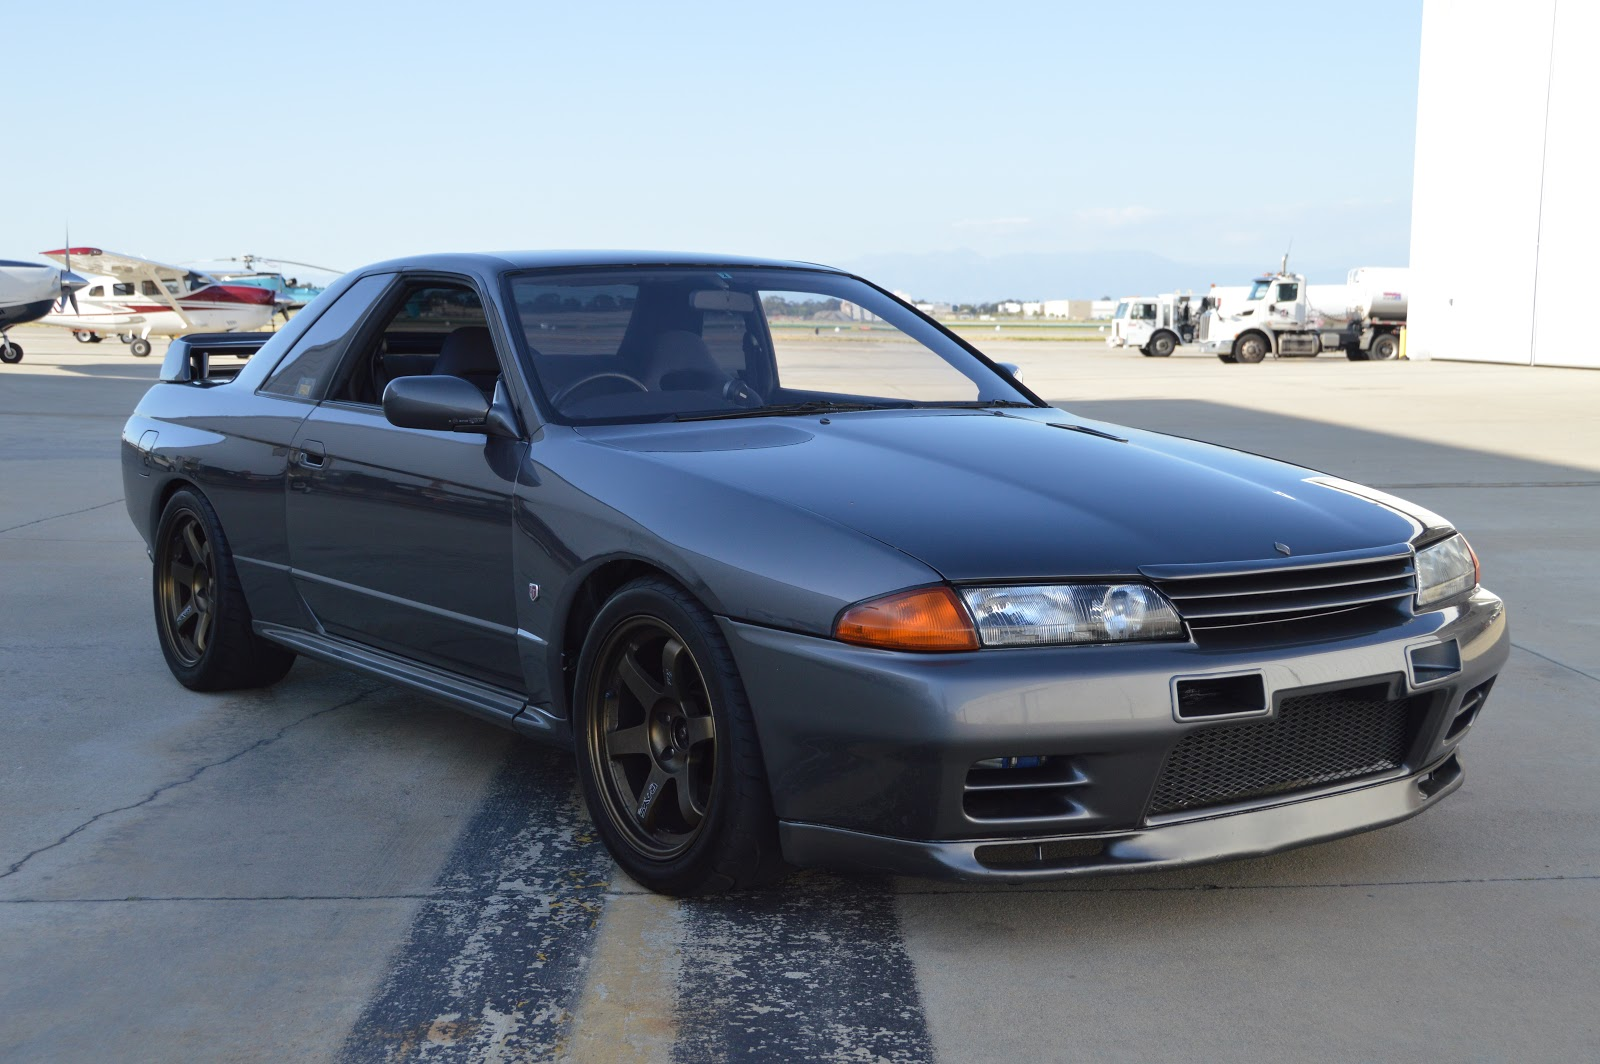 nissan skyline gt r s in the usa blog what wheels fit my r32 nissan skyline gt r. Black Bedroom Furniture Sets. Home Design Ideas